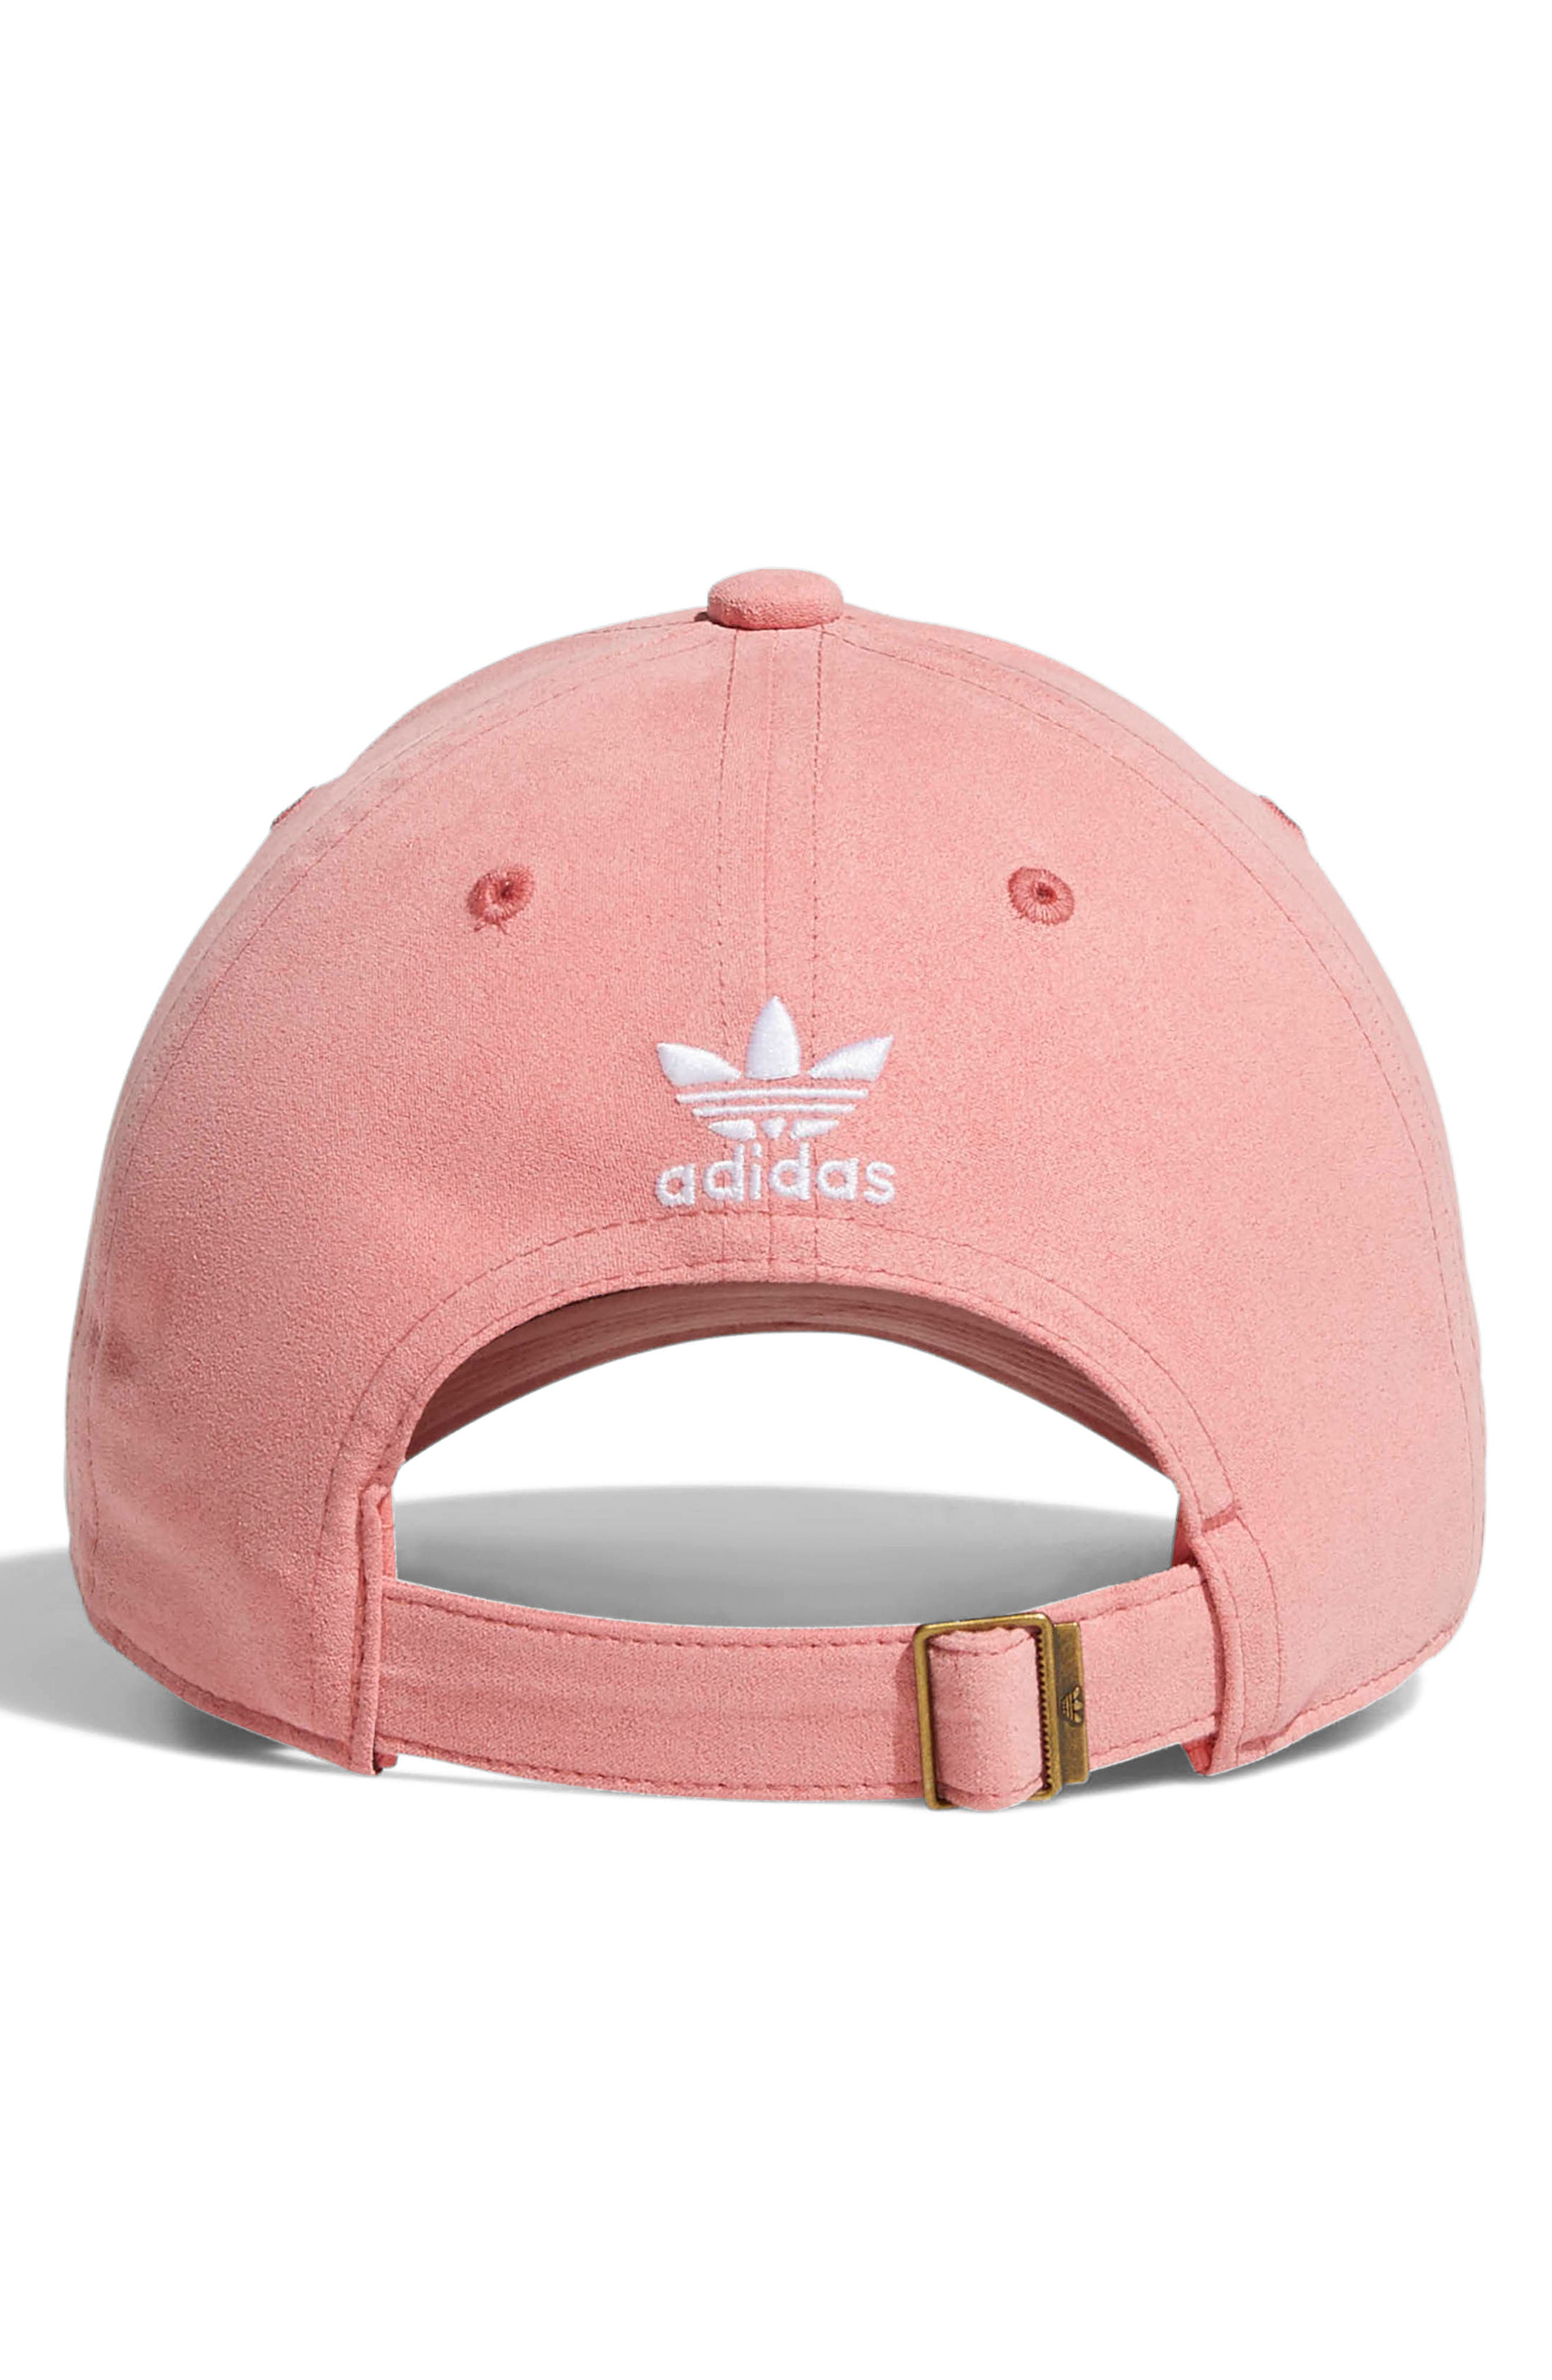 Relaxed Back Strap Cap,                             Alternate thumbnail 3, color,                             TACTILE ROSE/ WHITE